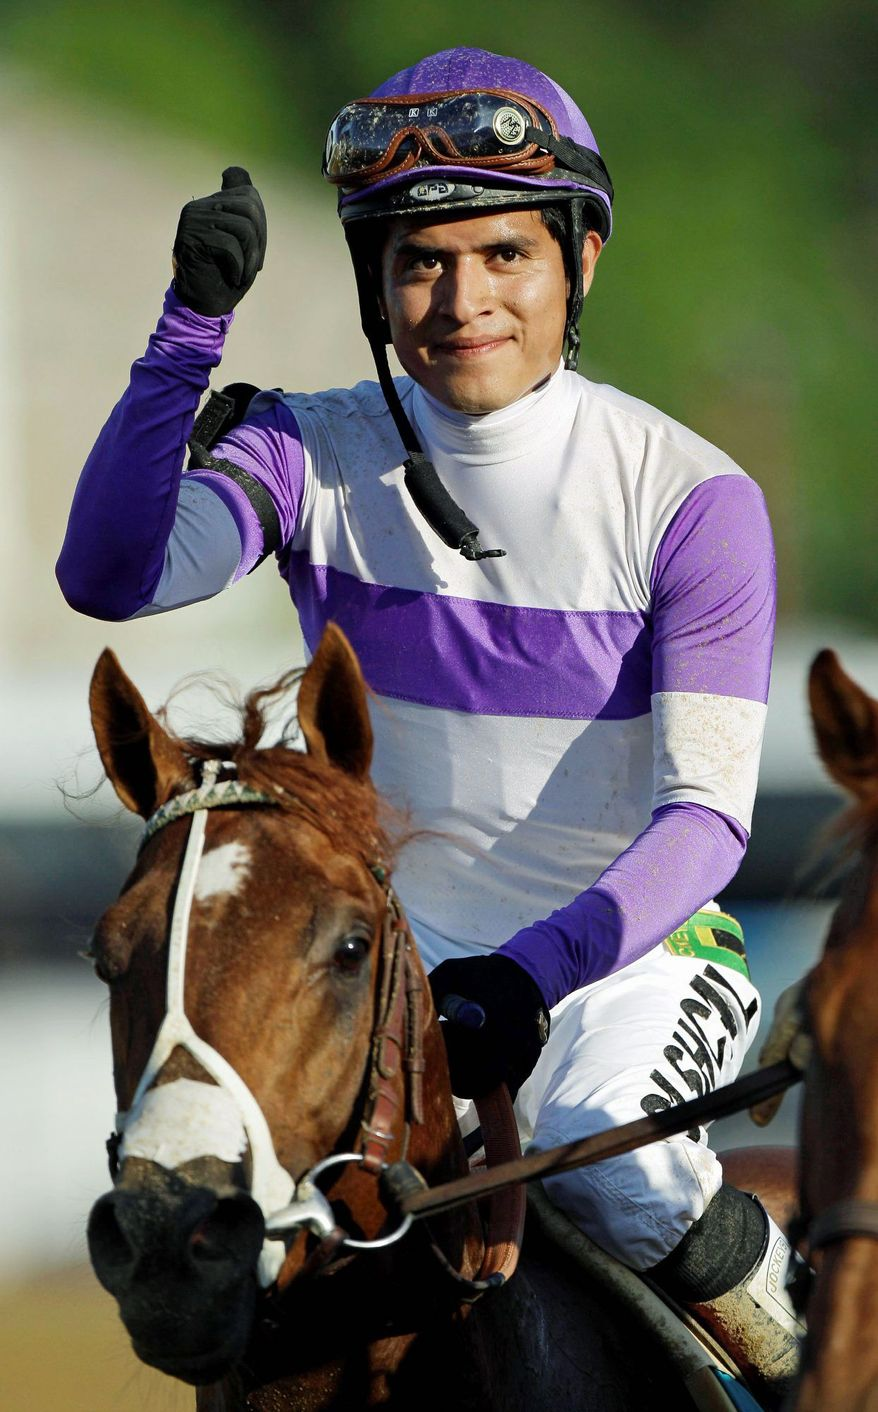 Jockey Mario Gutierrez, 25, hasn't looked back since owner Paul Reddam and trainer Doug O'Neill put him on I'll Have Another before the Robert B. Lewis Stakes at Santa Anita in February. Victories in the Kentucky Derby and Preakness Stakes followed, and now Gutierrez is on the brink of Triple Crown history. (Associated Press)